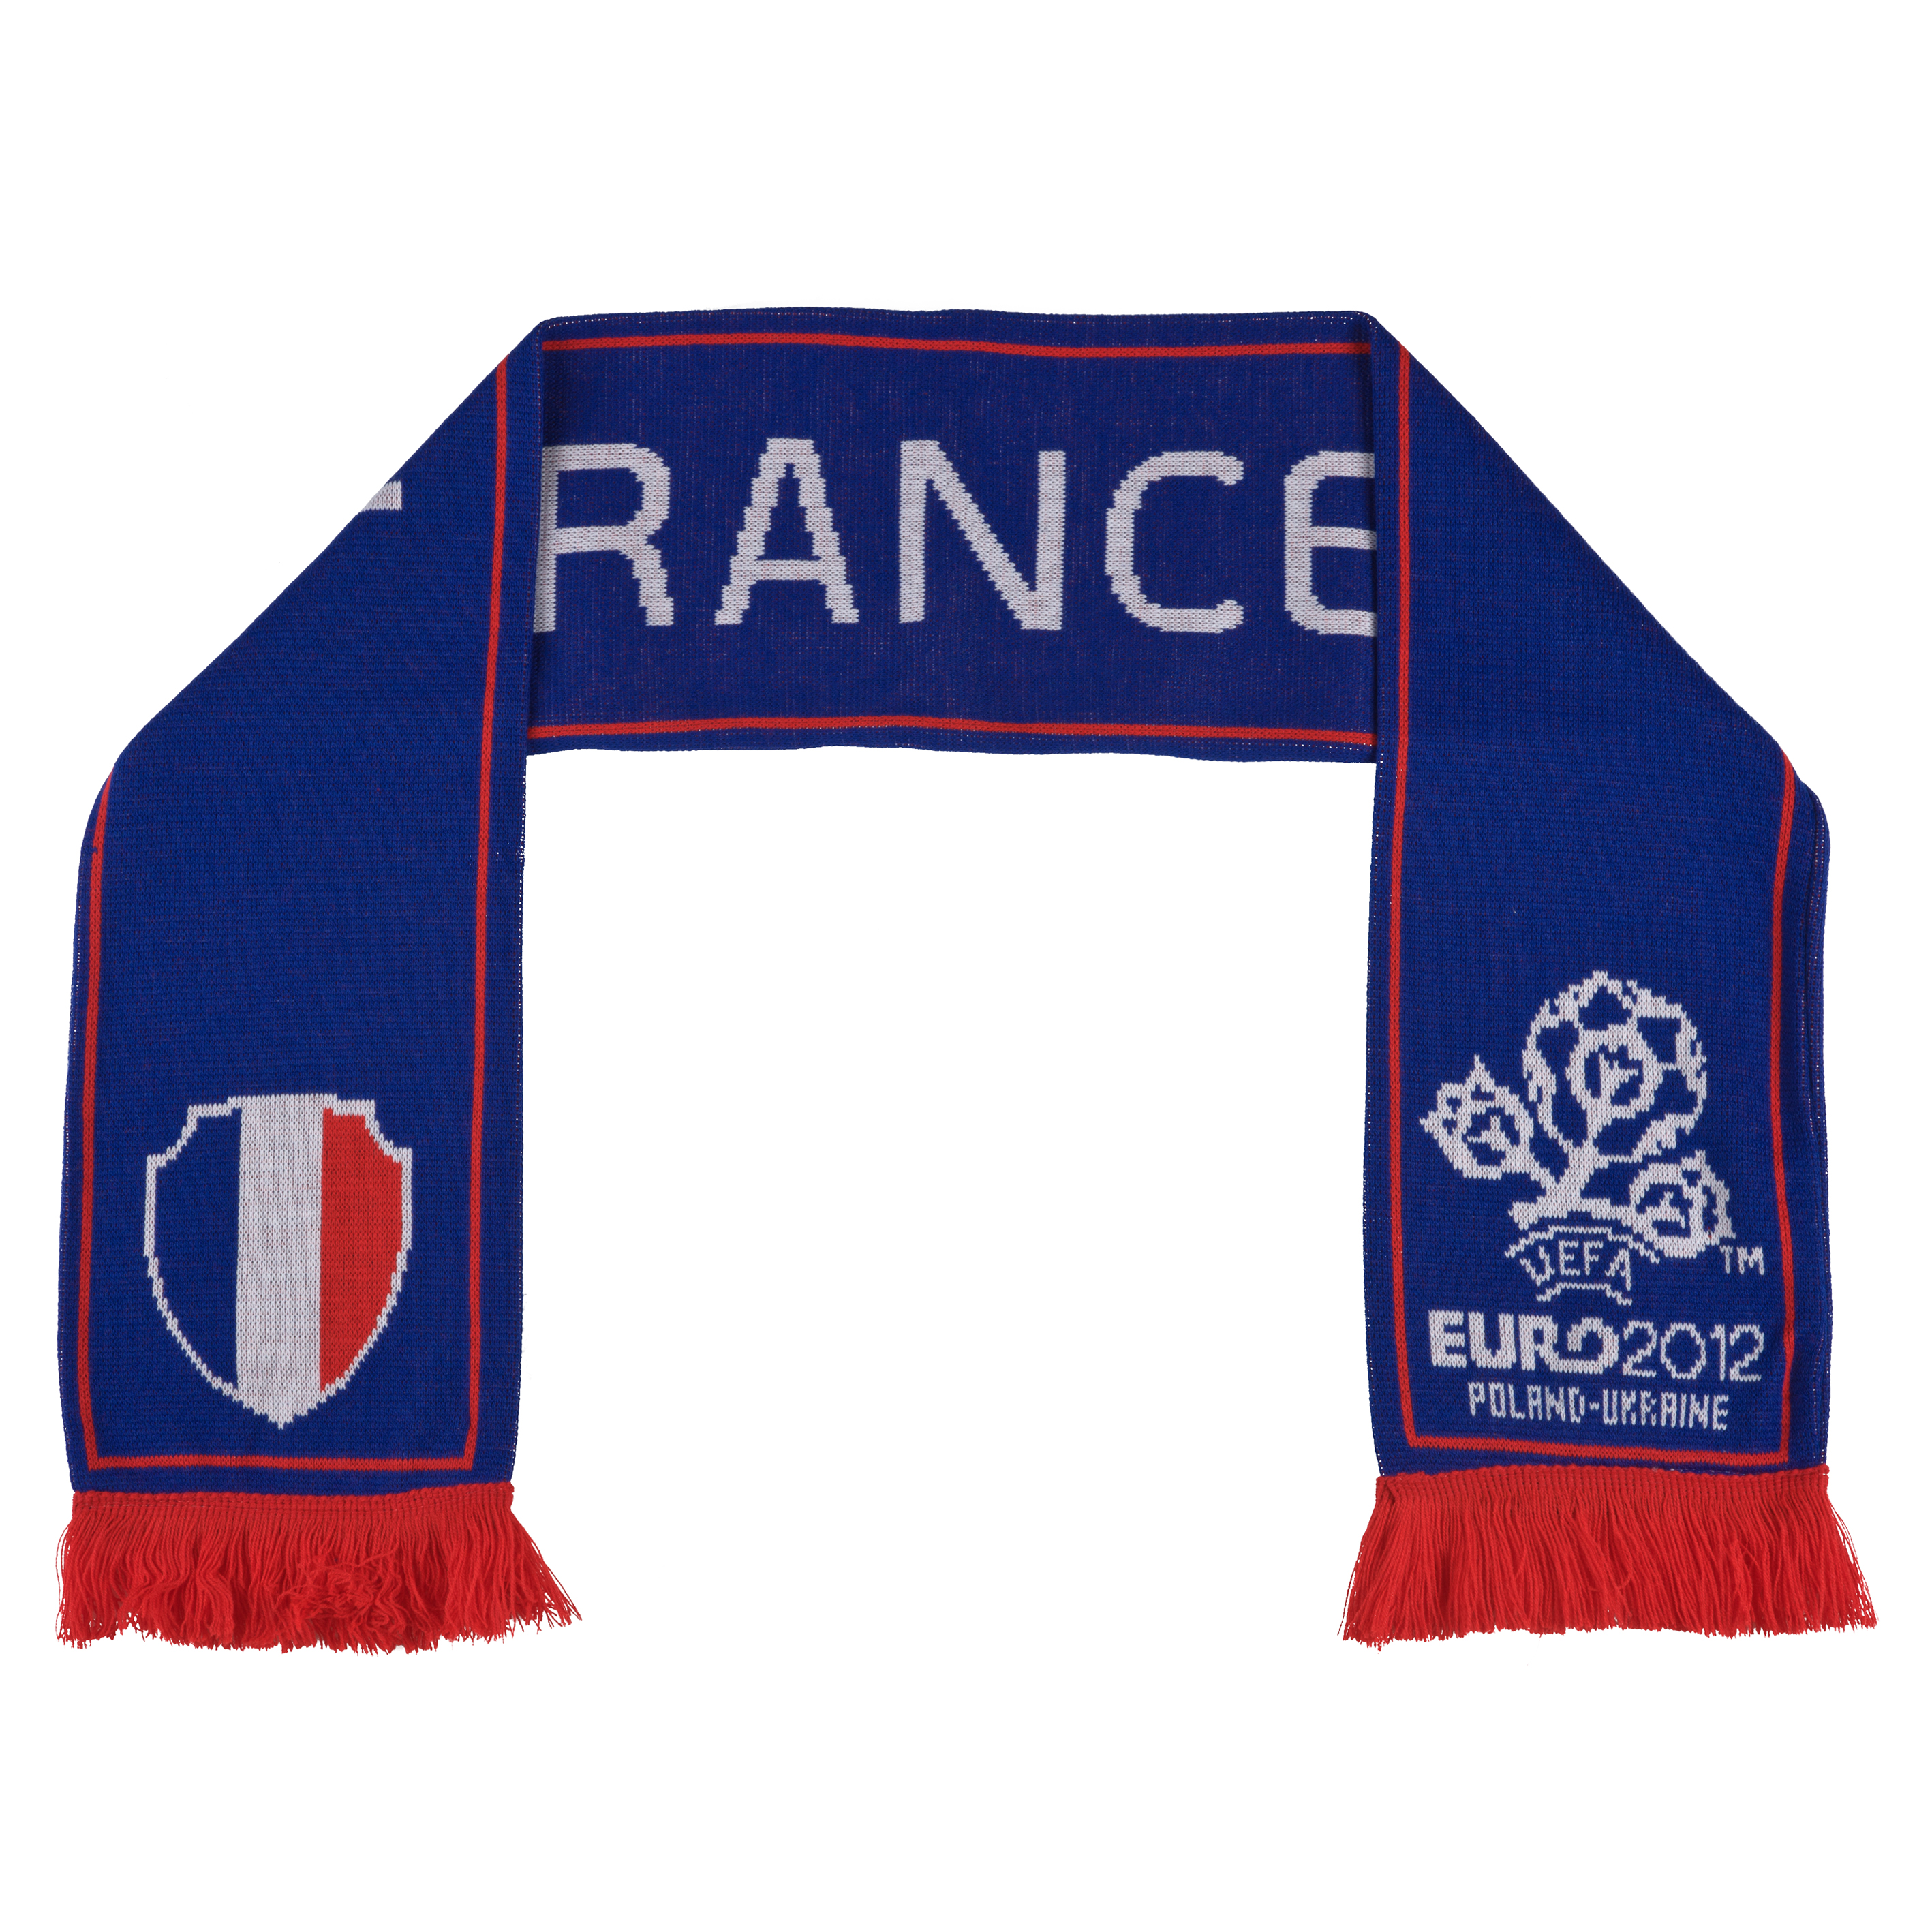 Euro 2012 France Jacquard Scarf - Blue/White/Red